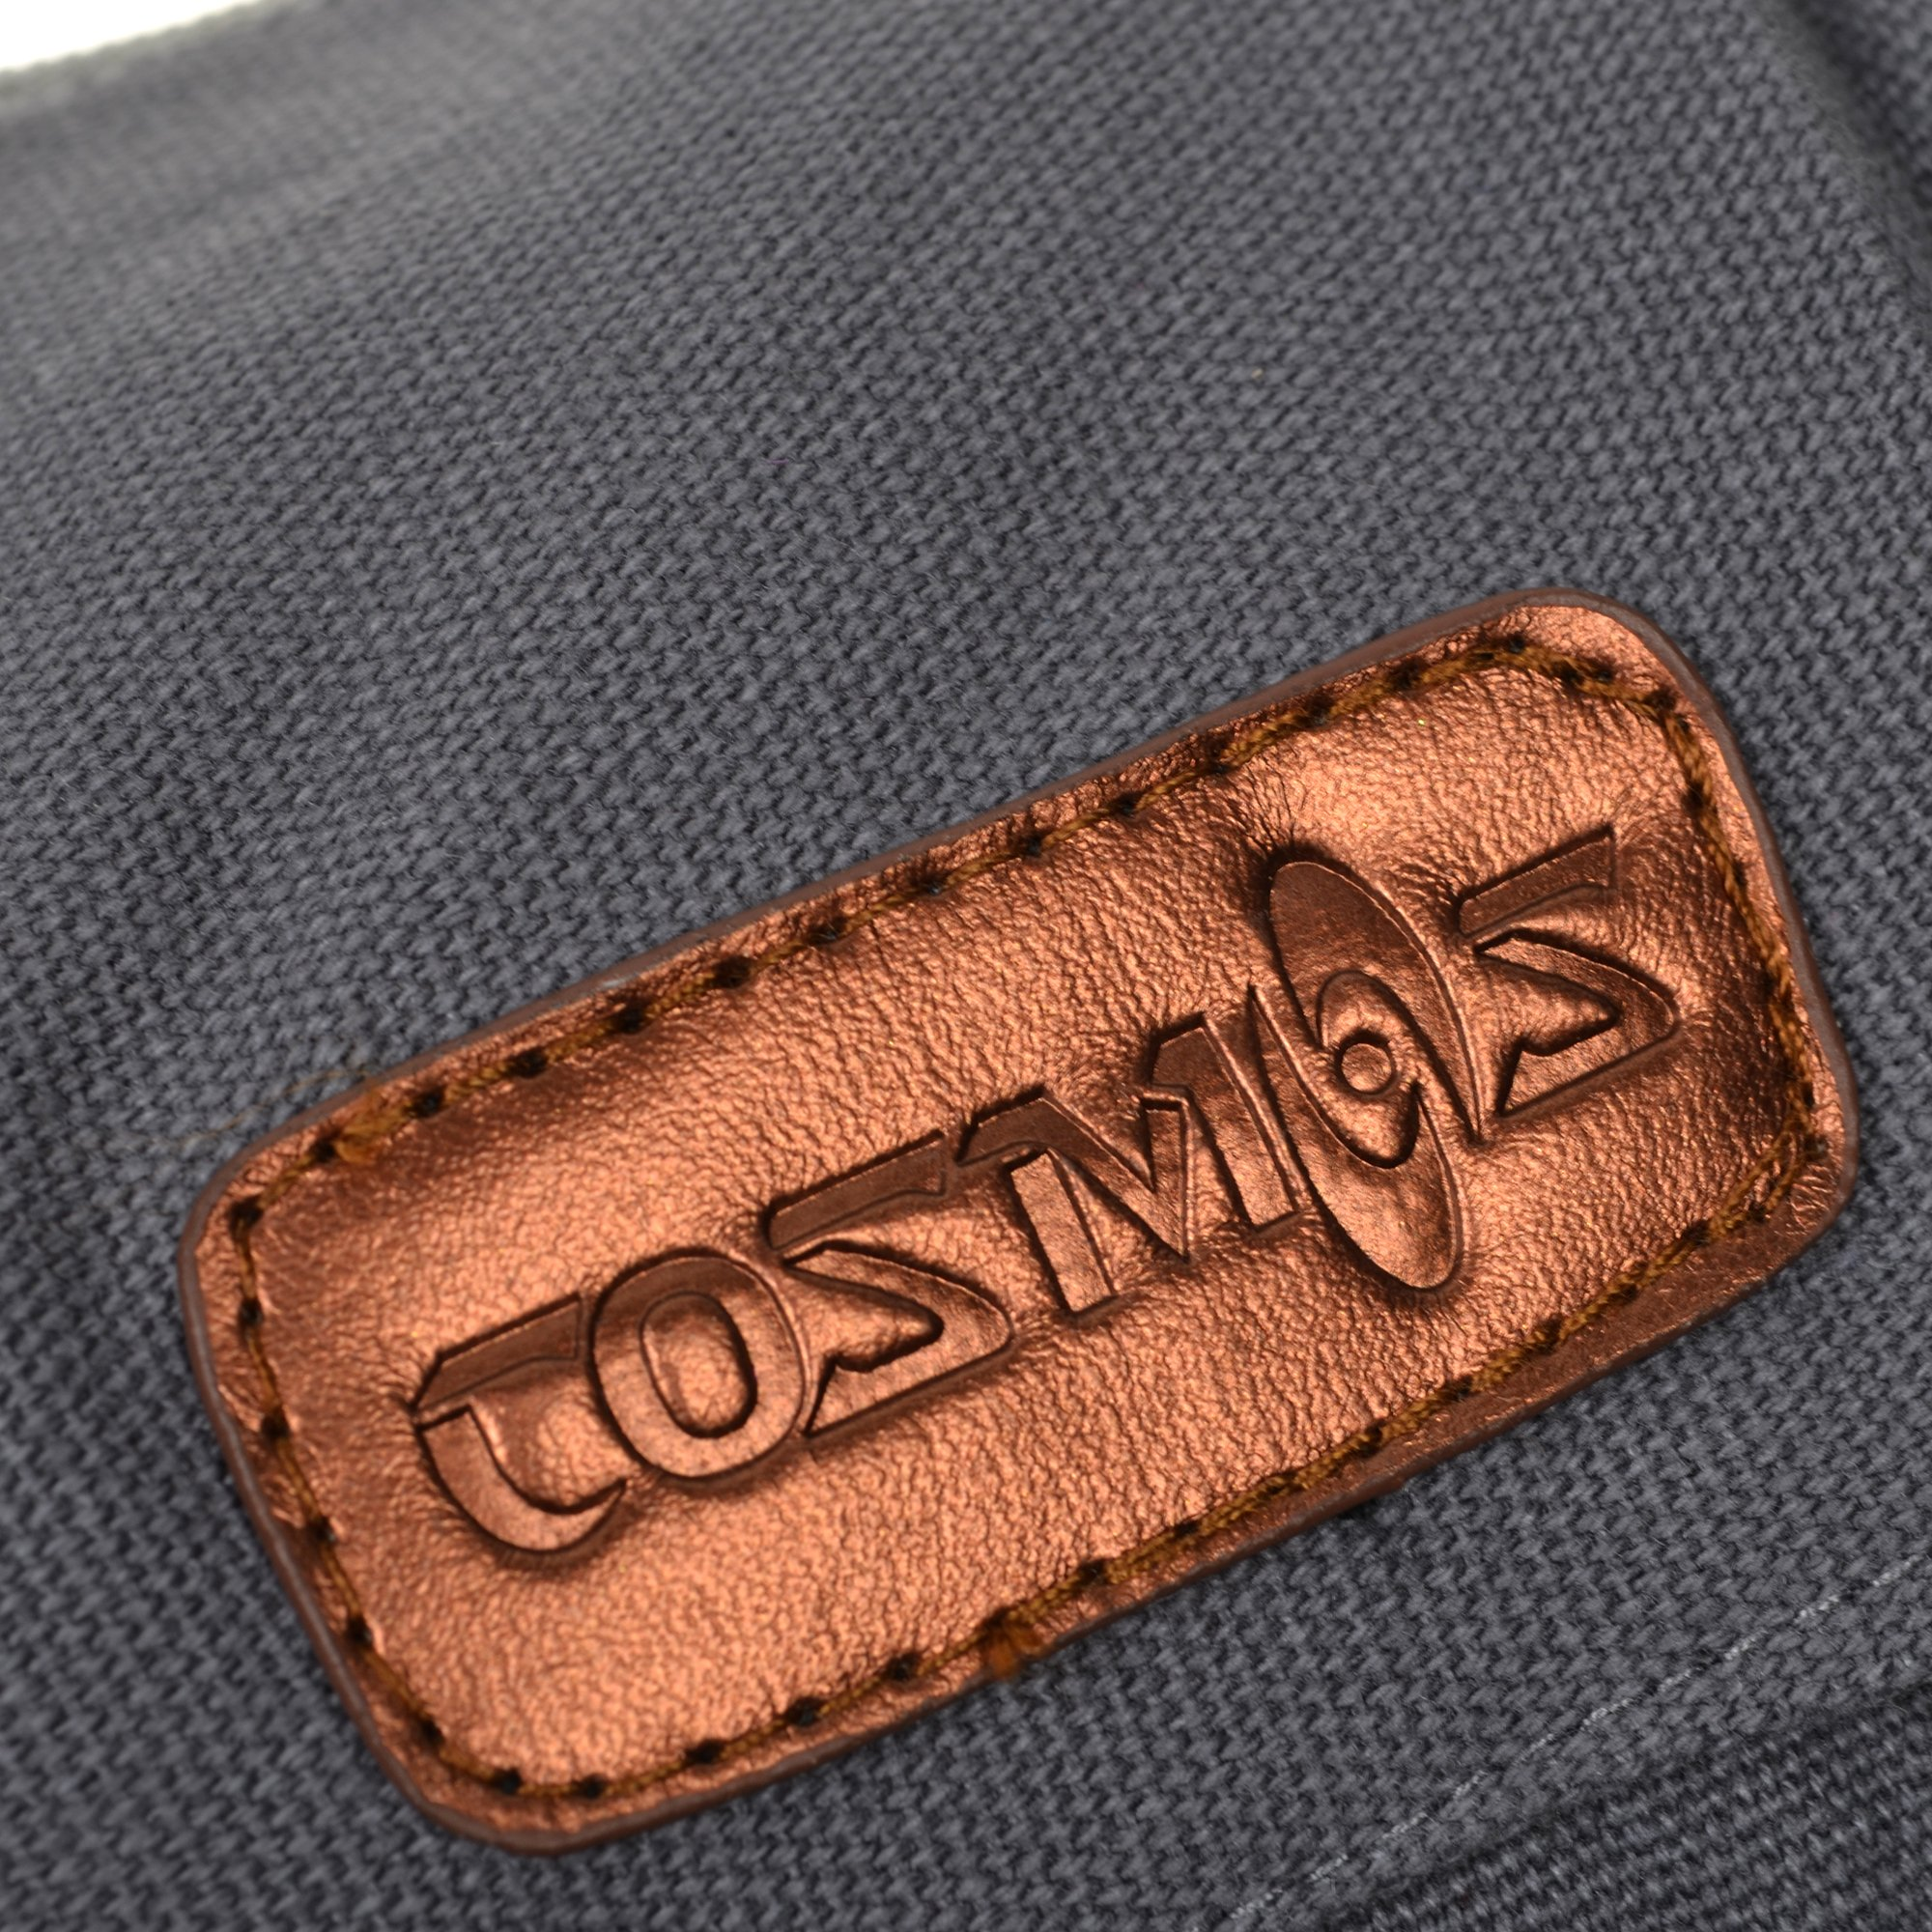 Cosmos Exercise Yoga Mat Carrying Shoulder Strap Bag with Internal and Outside Storge Pocket (Yoga Mat is NOT Included) by Cosmos (Image #7)